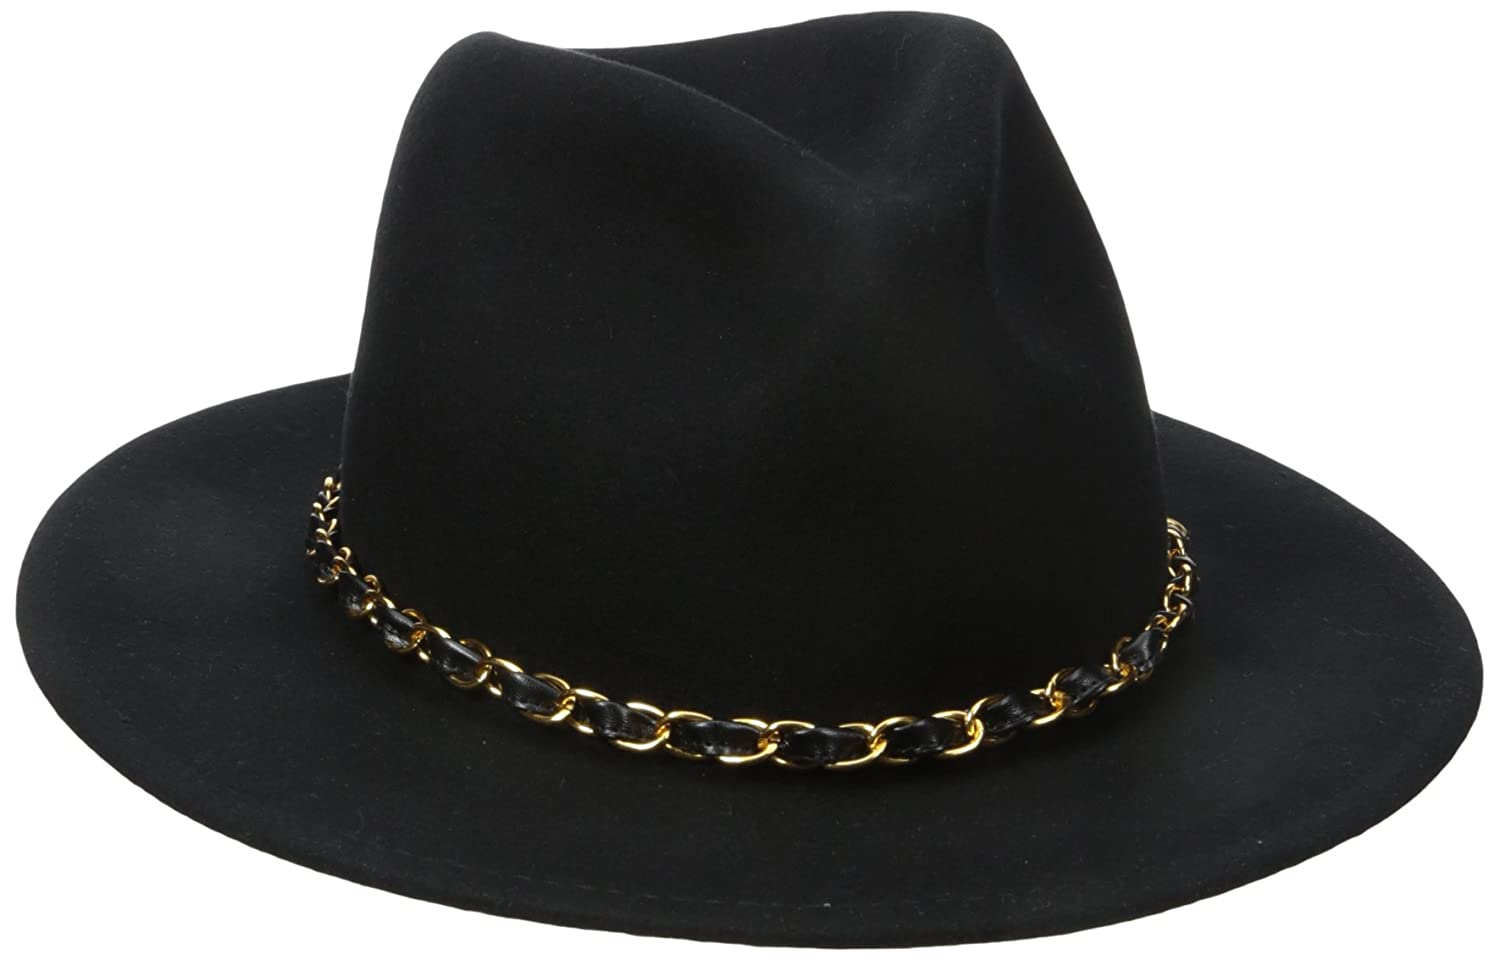 San Diego Hat Company Women's Fedora with Gold Chain Band Black One Size WFH7980